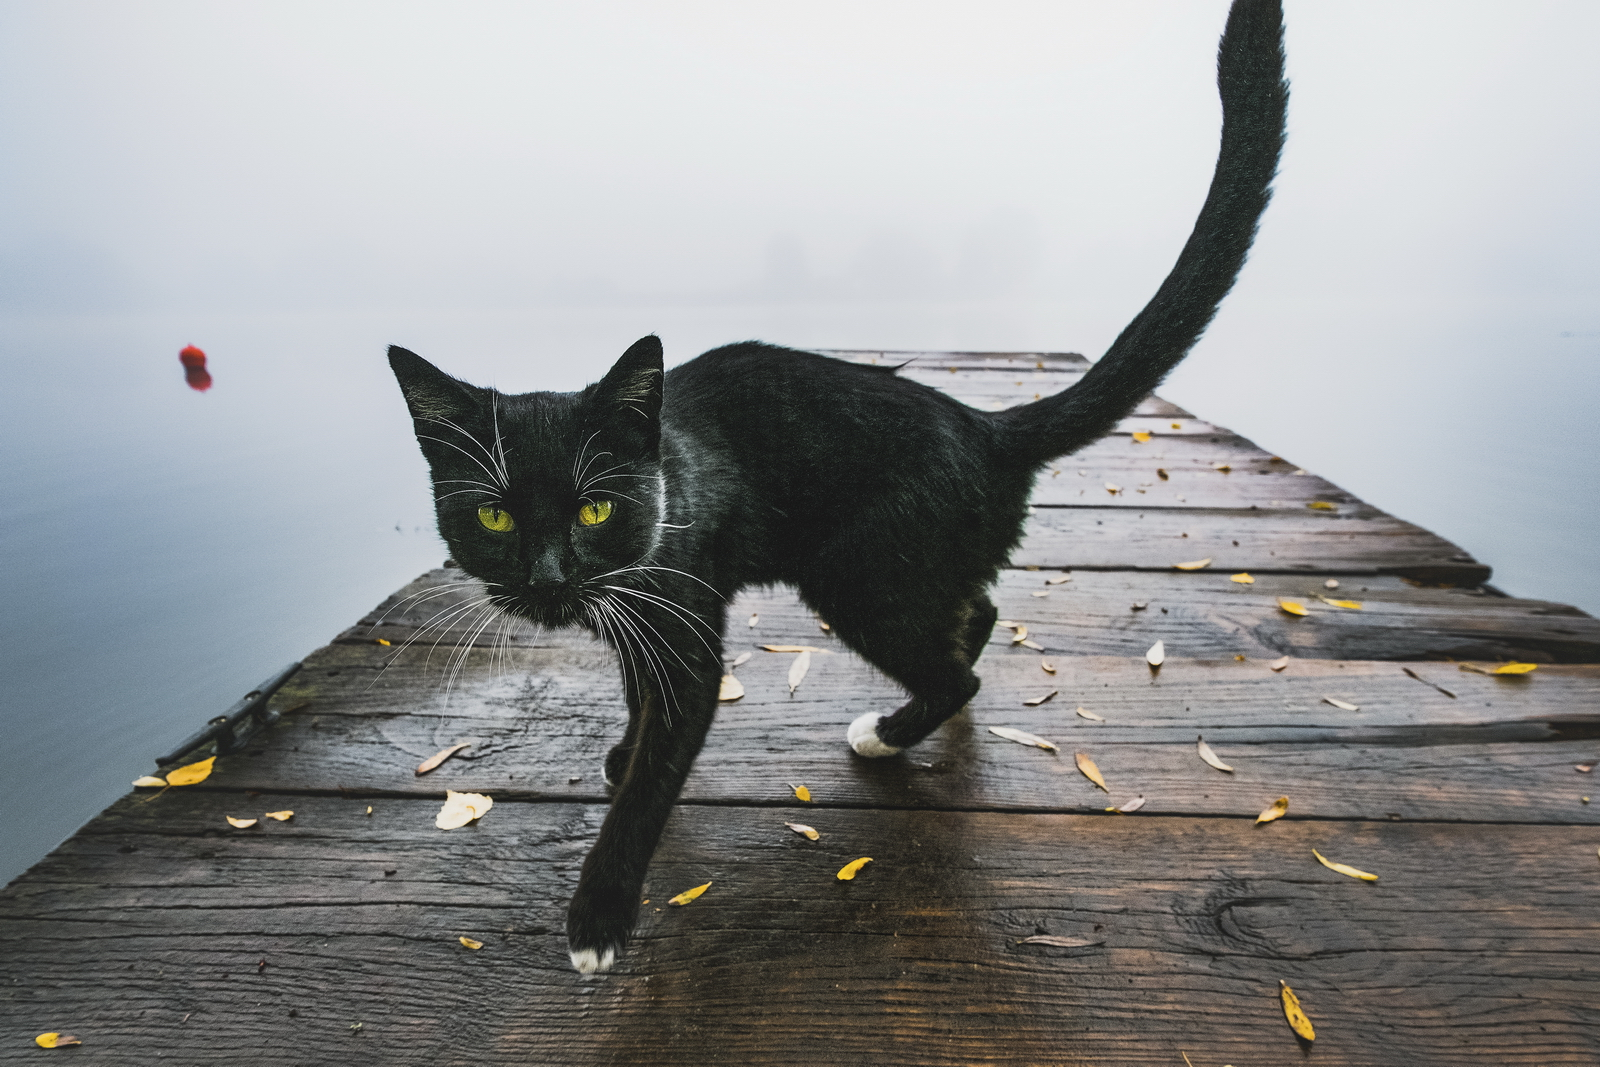 Kitty – In the misty morning on the river Oder in the gallery landscape he visited me a black stranger. Extremely nice and busy, we walked together in the back and to capture Kitty. Fuji XPro-2, XF 10-20, 1/350s, f5.6, ISO 800